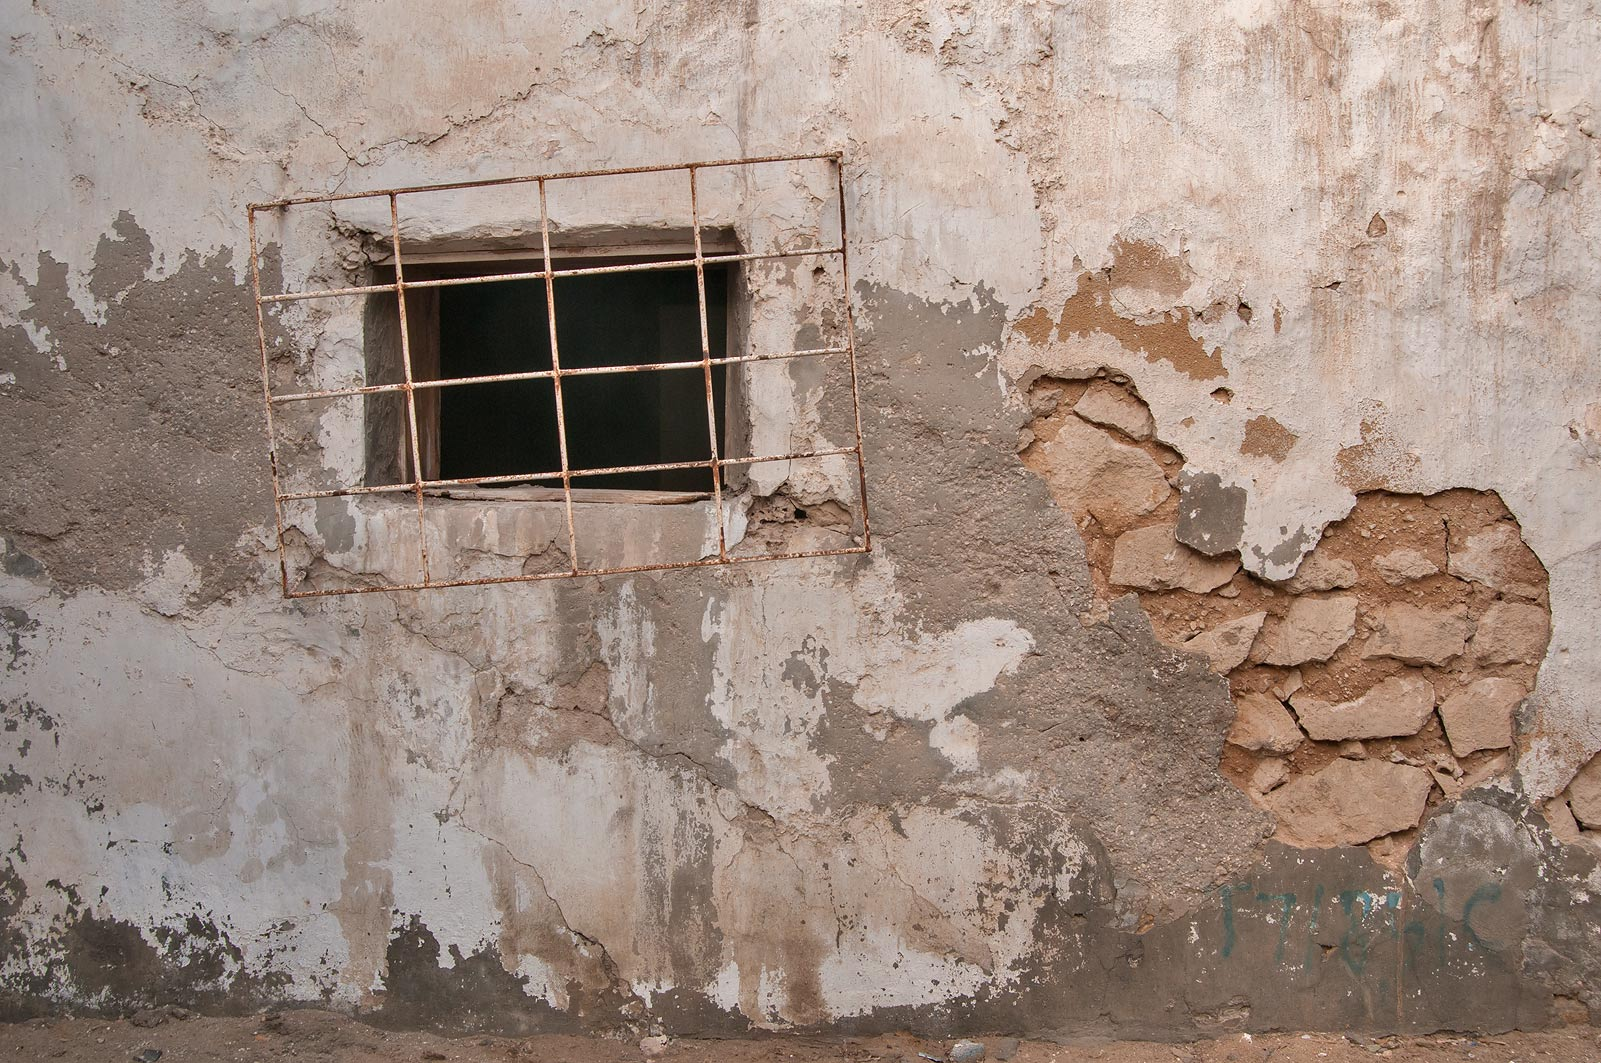 Window near Abdullah Bin Thani St., Musheirib area. Doha, Qatar